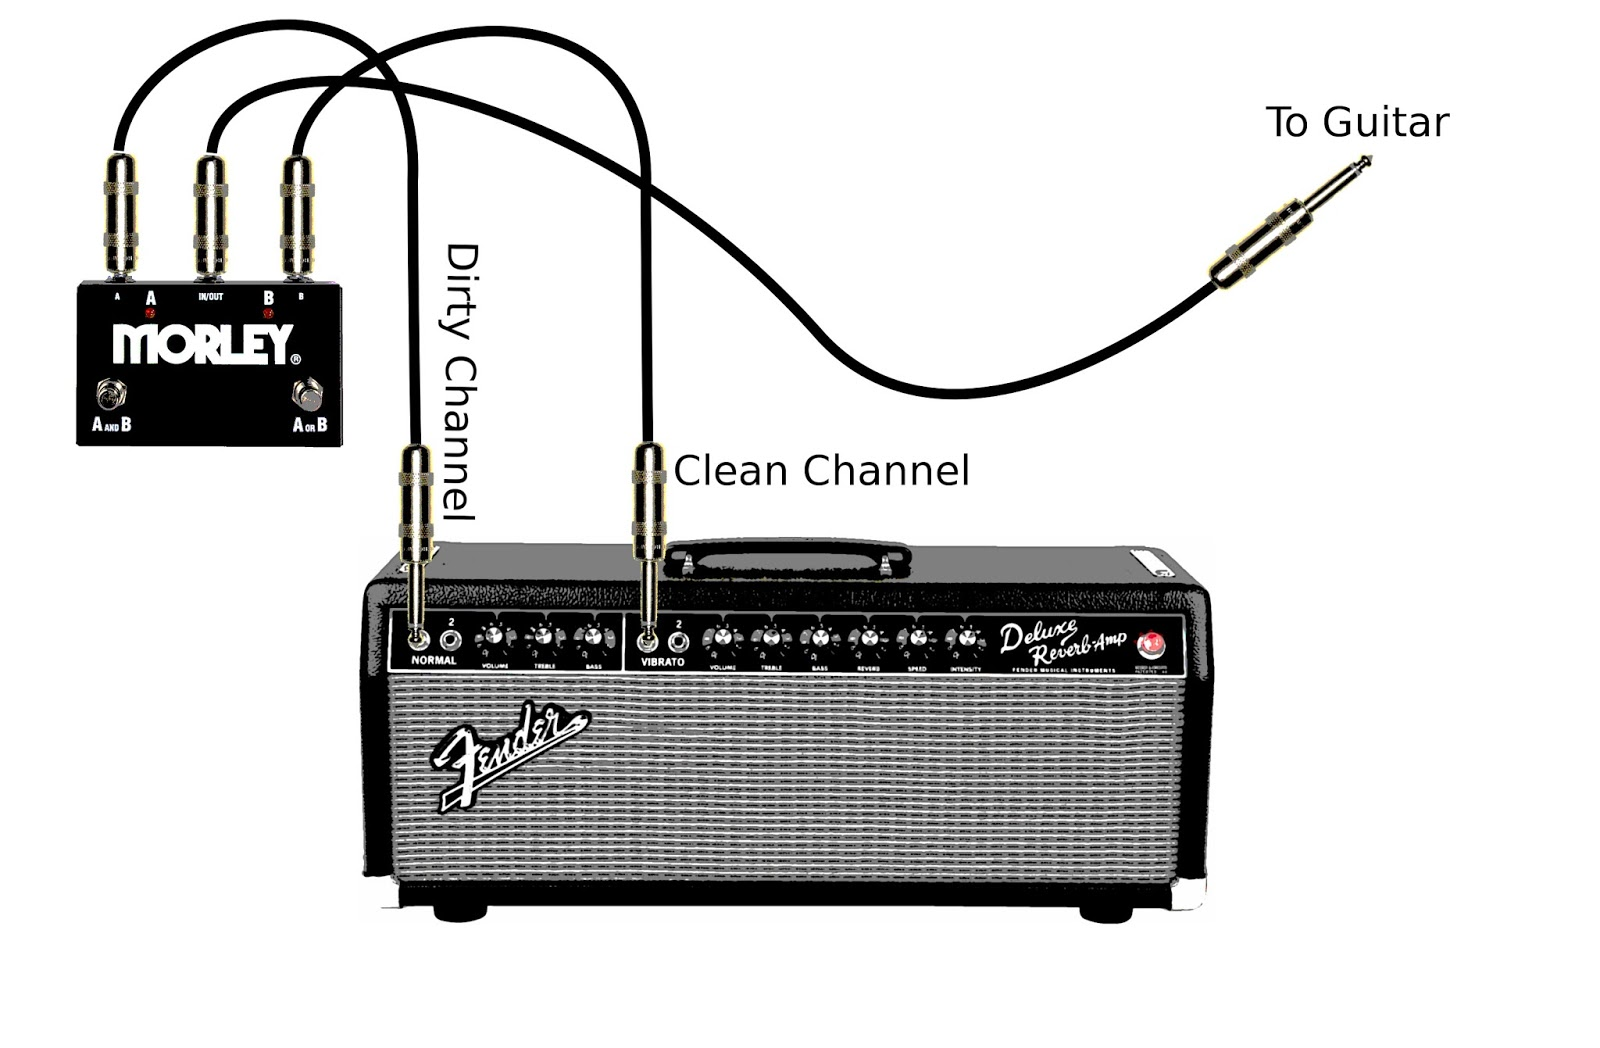 Aaronlumcom 2015 A B Box Guitar Effect Schematic The Next Idea Uses Two Channel Non Switchable Amp Such As Fender Reverb There Are Ton Of Amps Modeled After This And Youve Probably Seen Quite